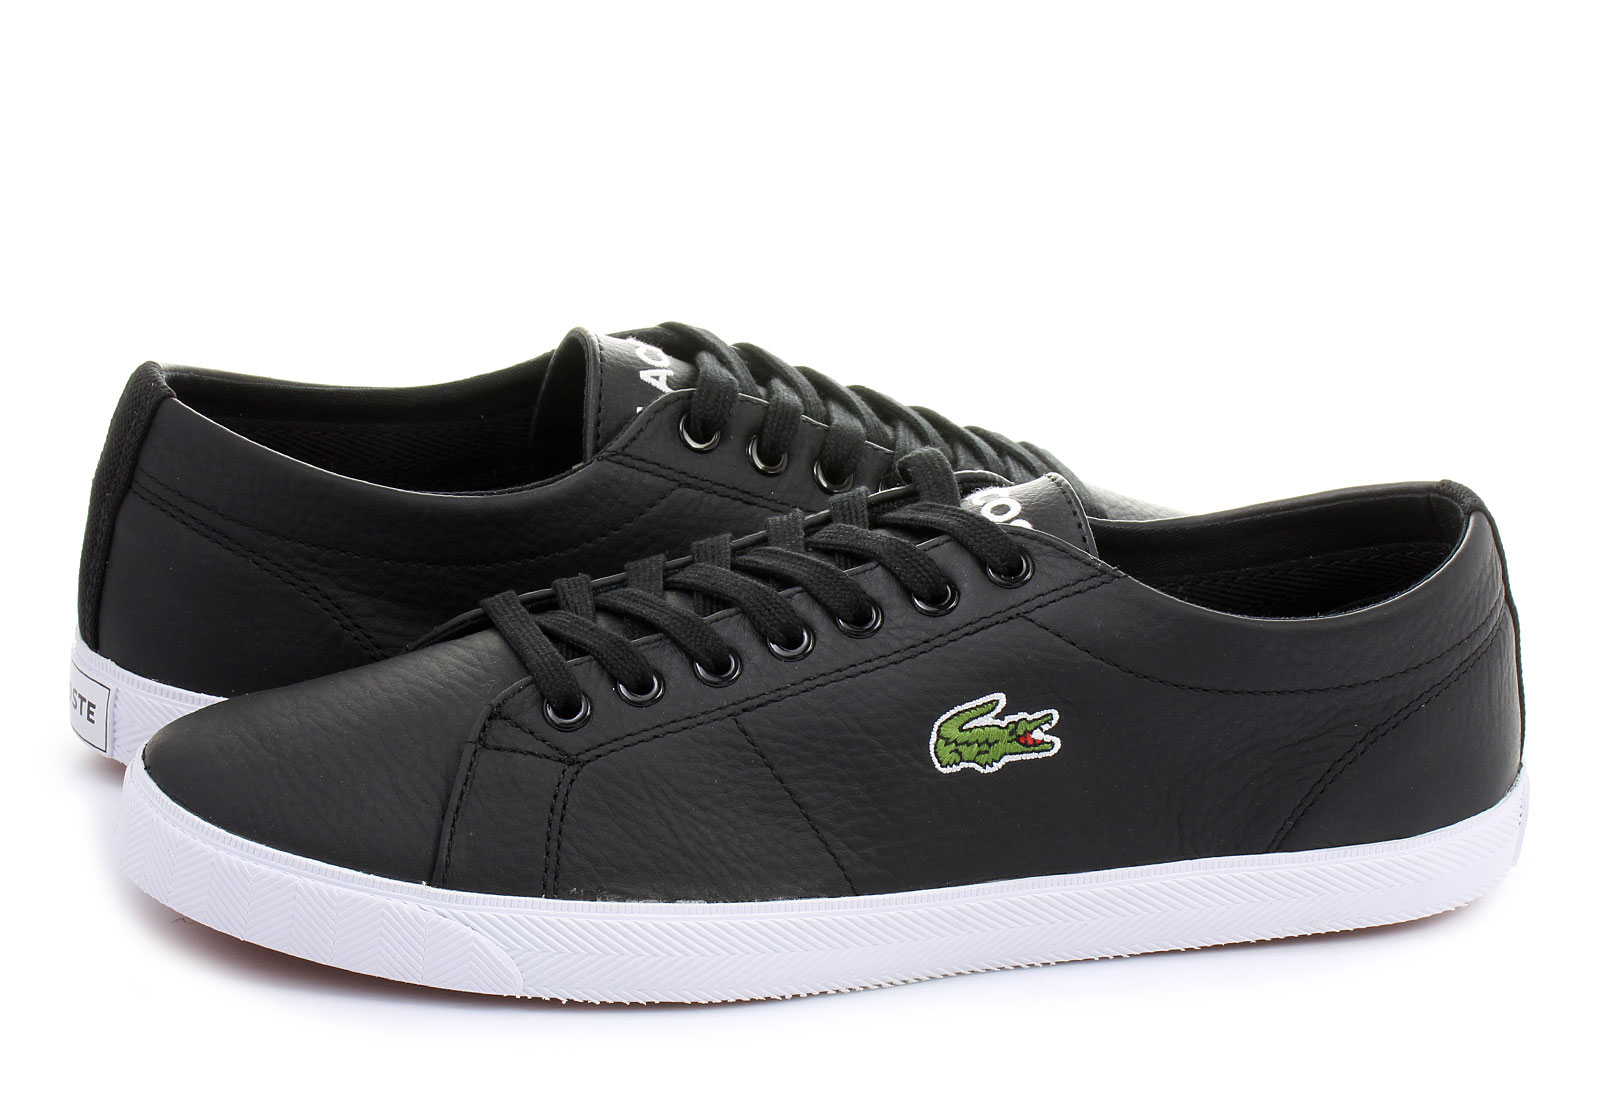 c0213e1e05ec Lacoste Shoes - Marcel Lcr3 - 163spm0100-02h - Online shop for ...